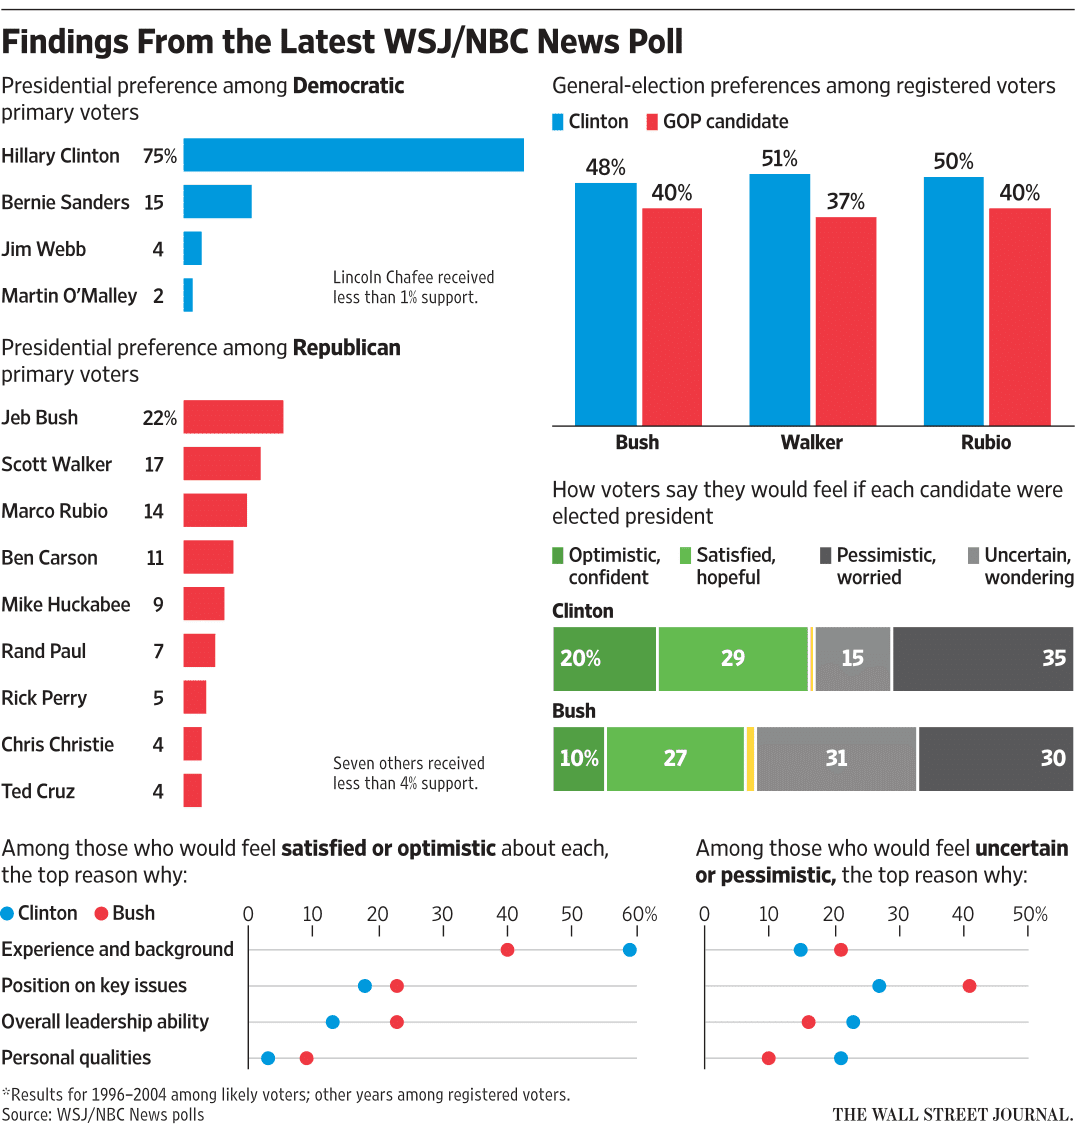 NBCWSJ POLL PRESIDENTIAL ELECTION 2016